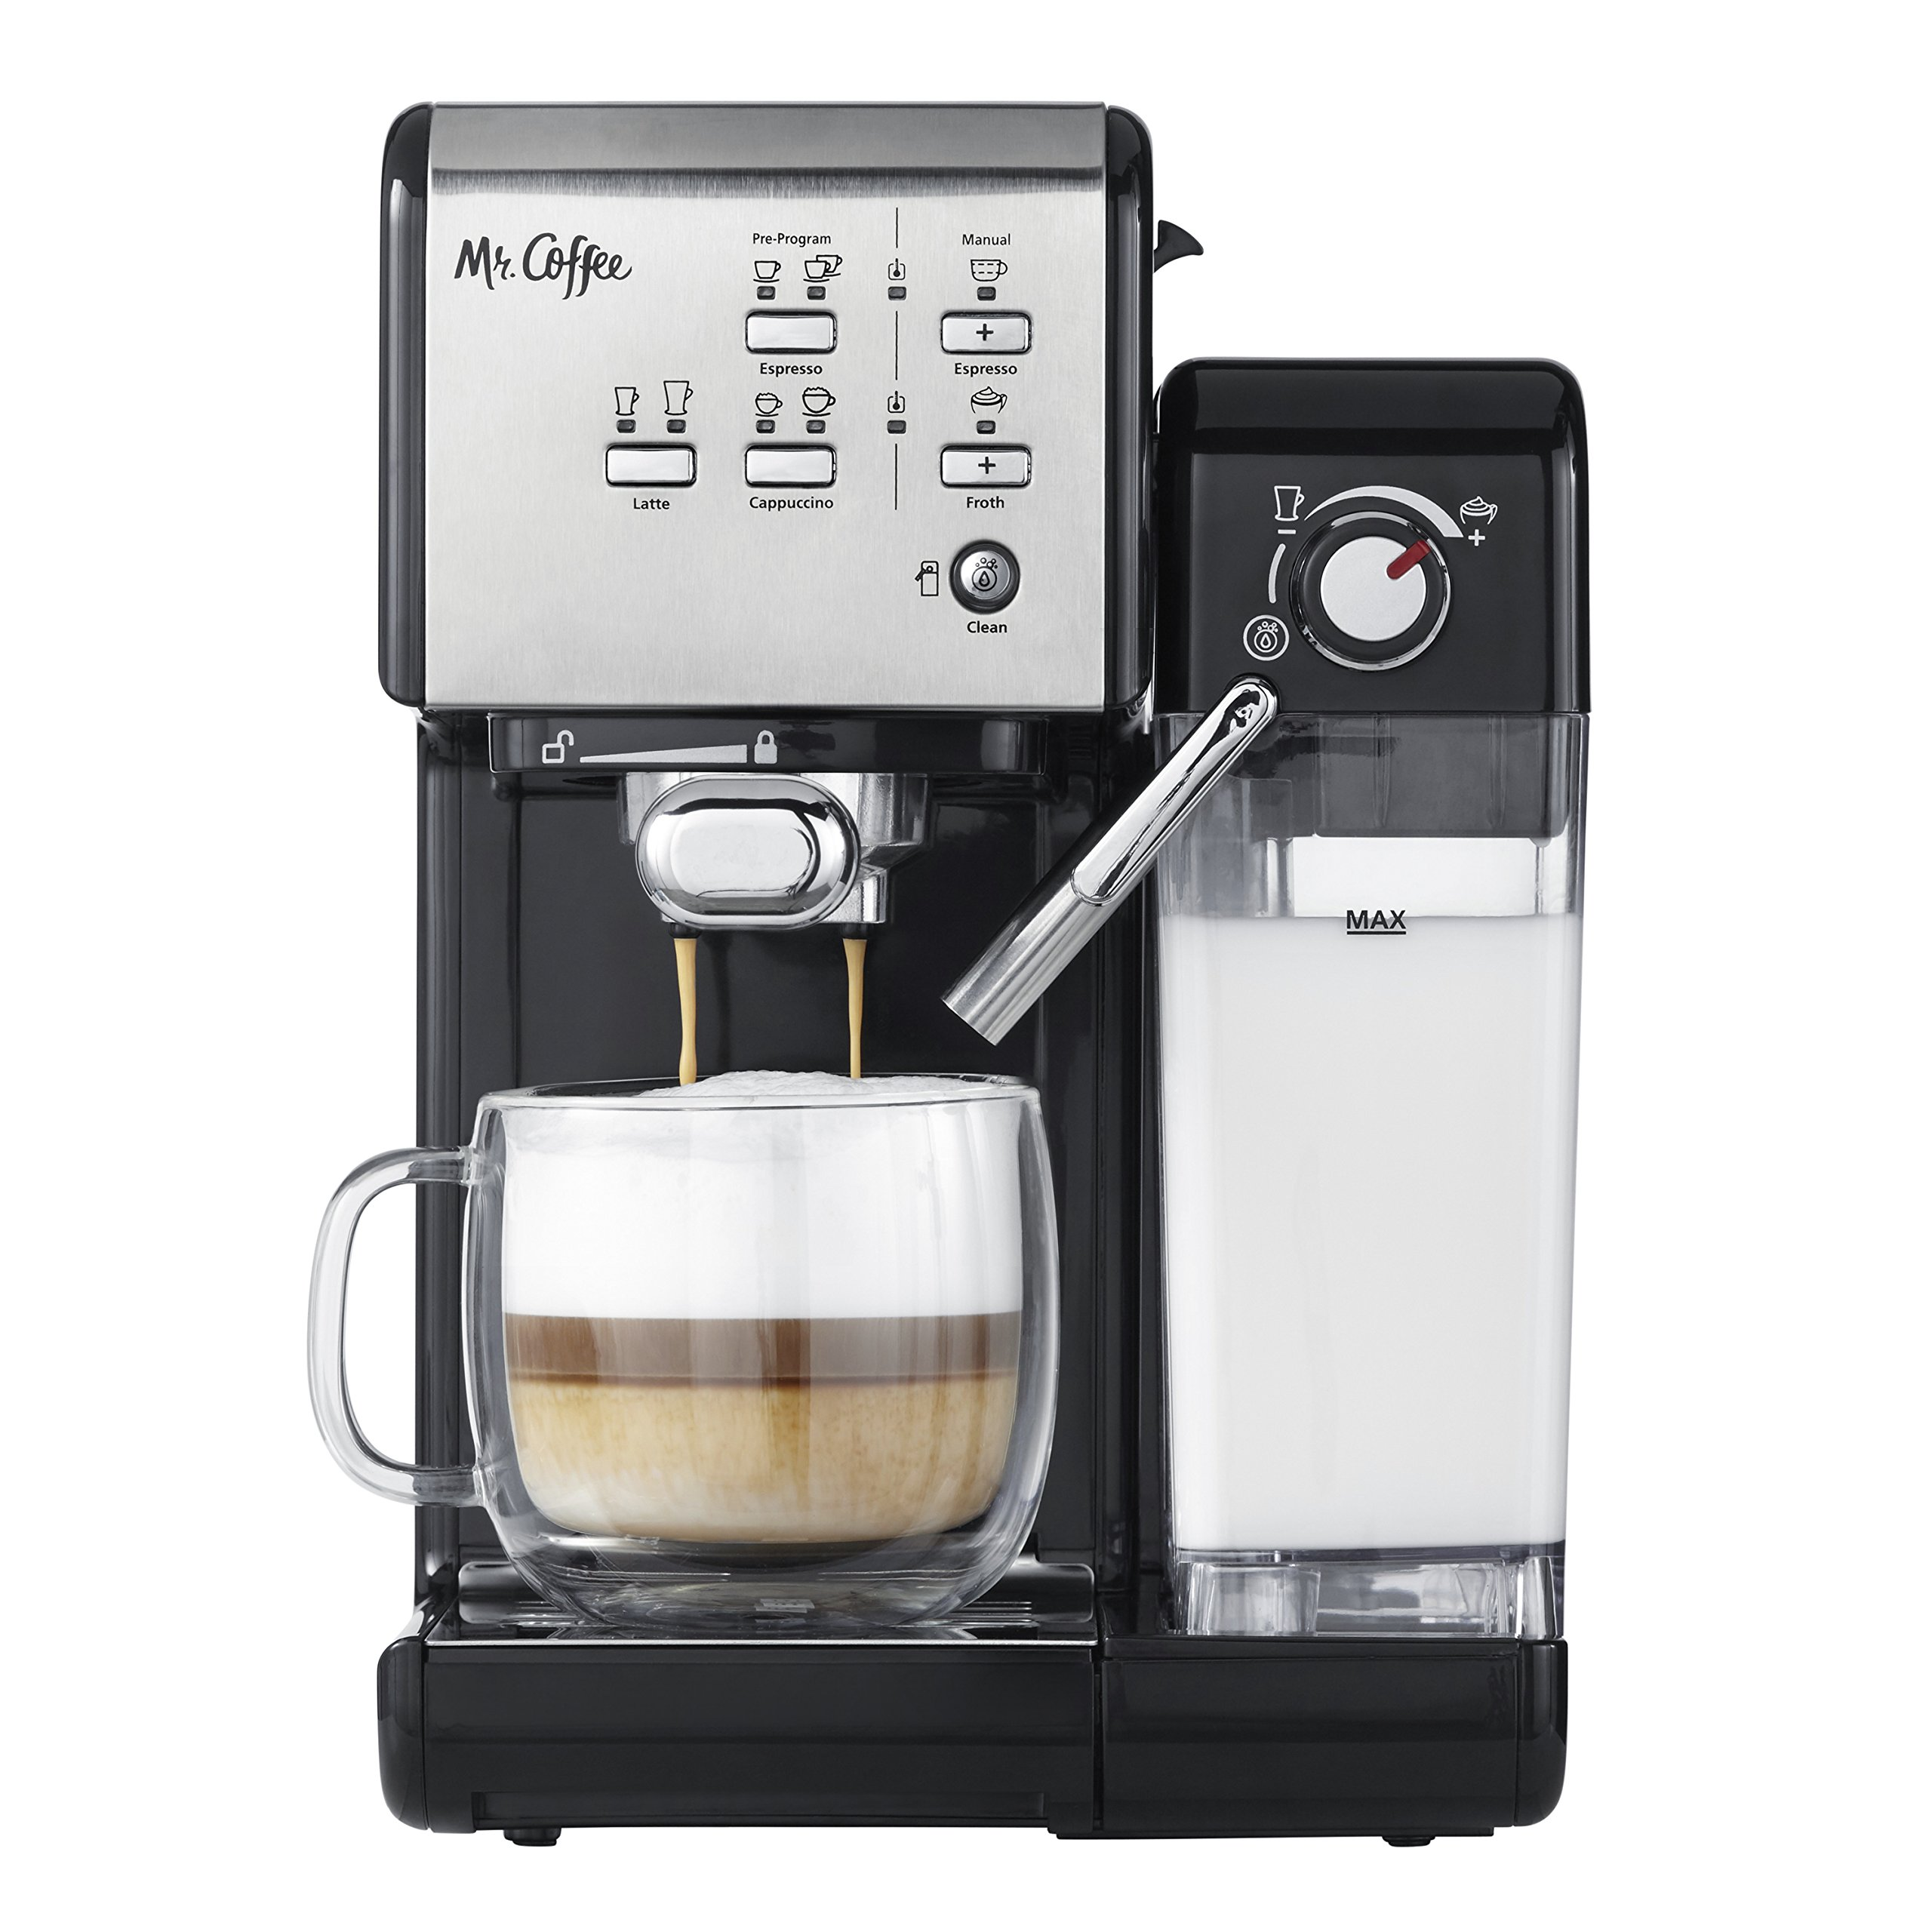 Mr. Coffee One-Touch CoffeeHouse Espresso Maker and Cappuccino Machine by Mr. Coffee